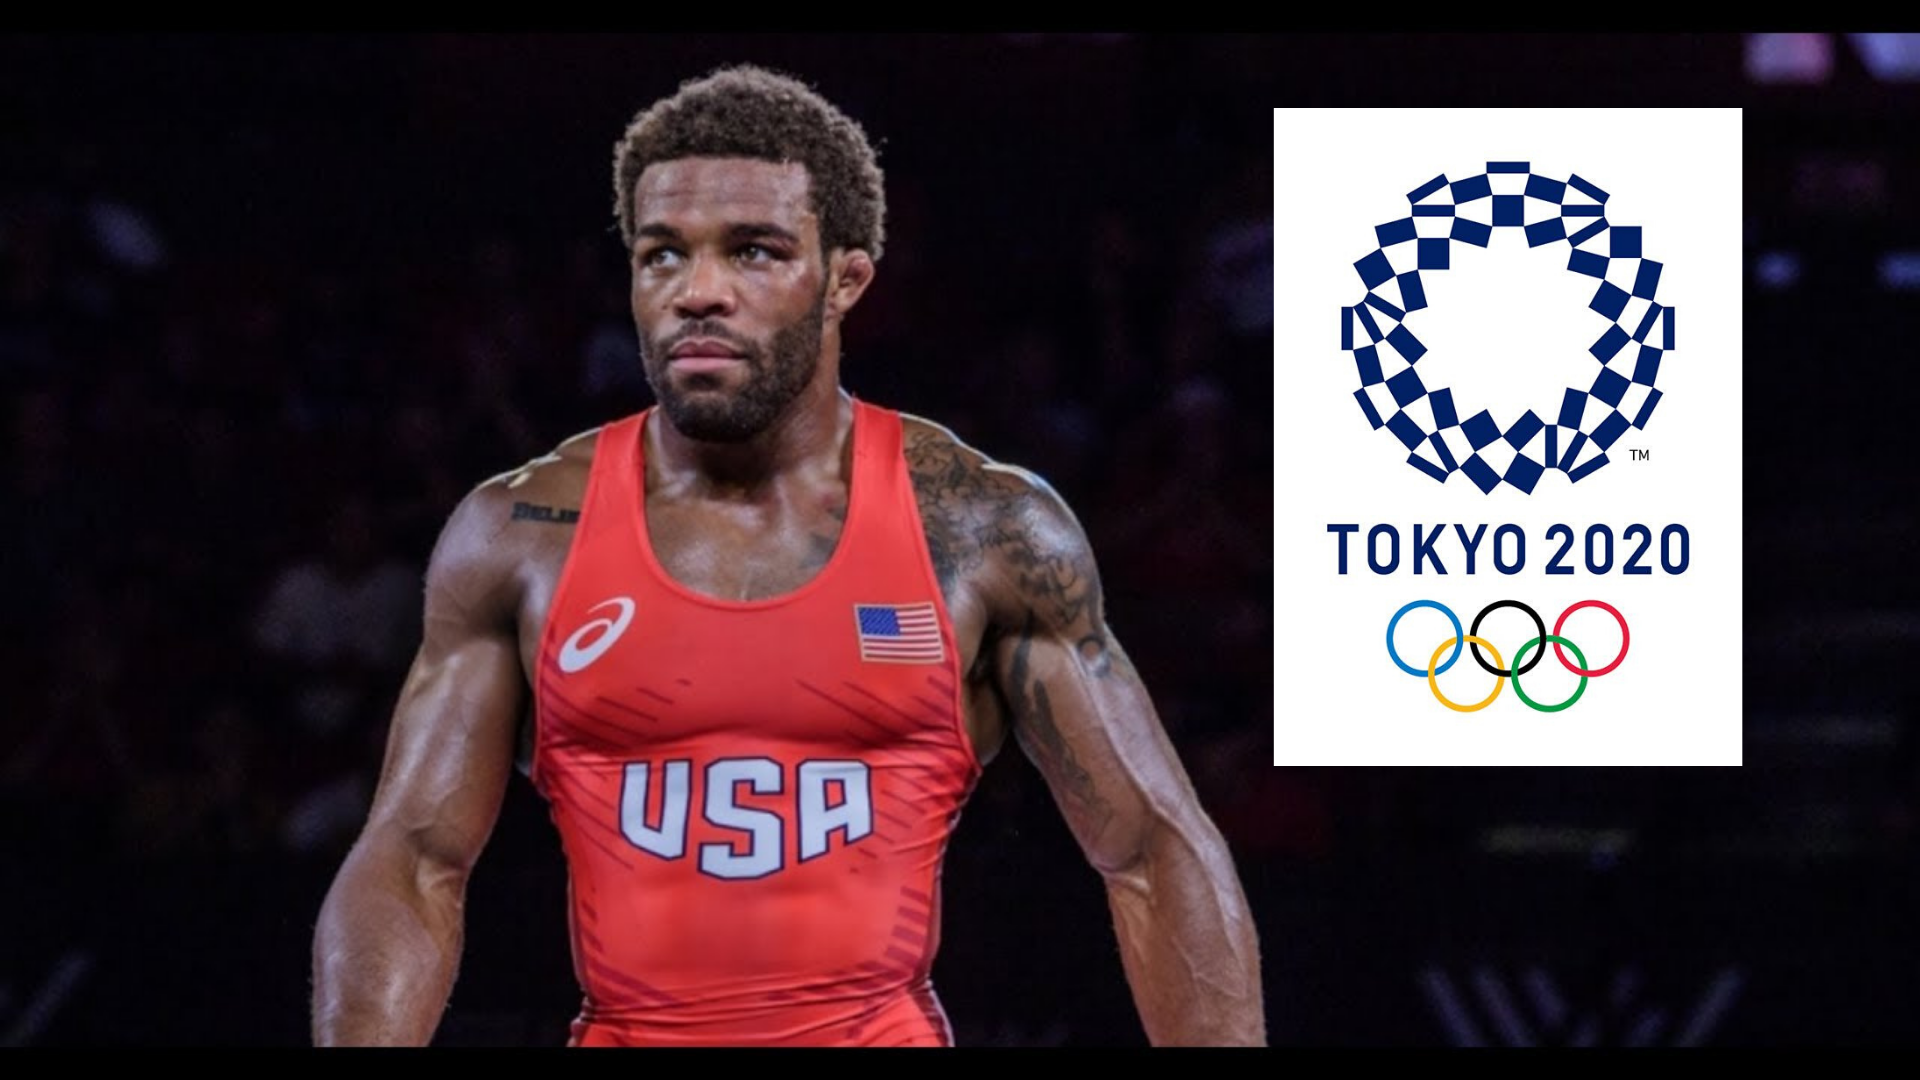 Wrestling phenom Jordan Burroughs asks athletes if they will participate at Tokyo 2020 - Tokyo